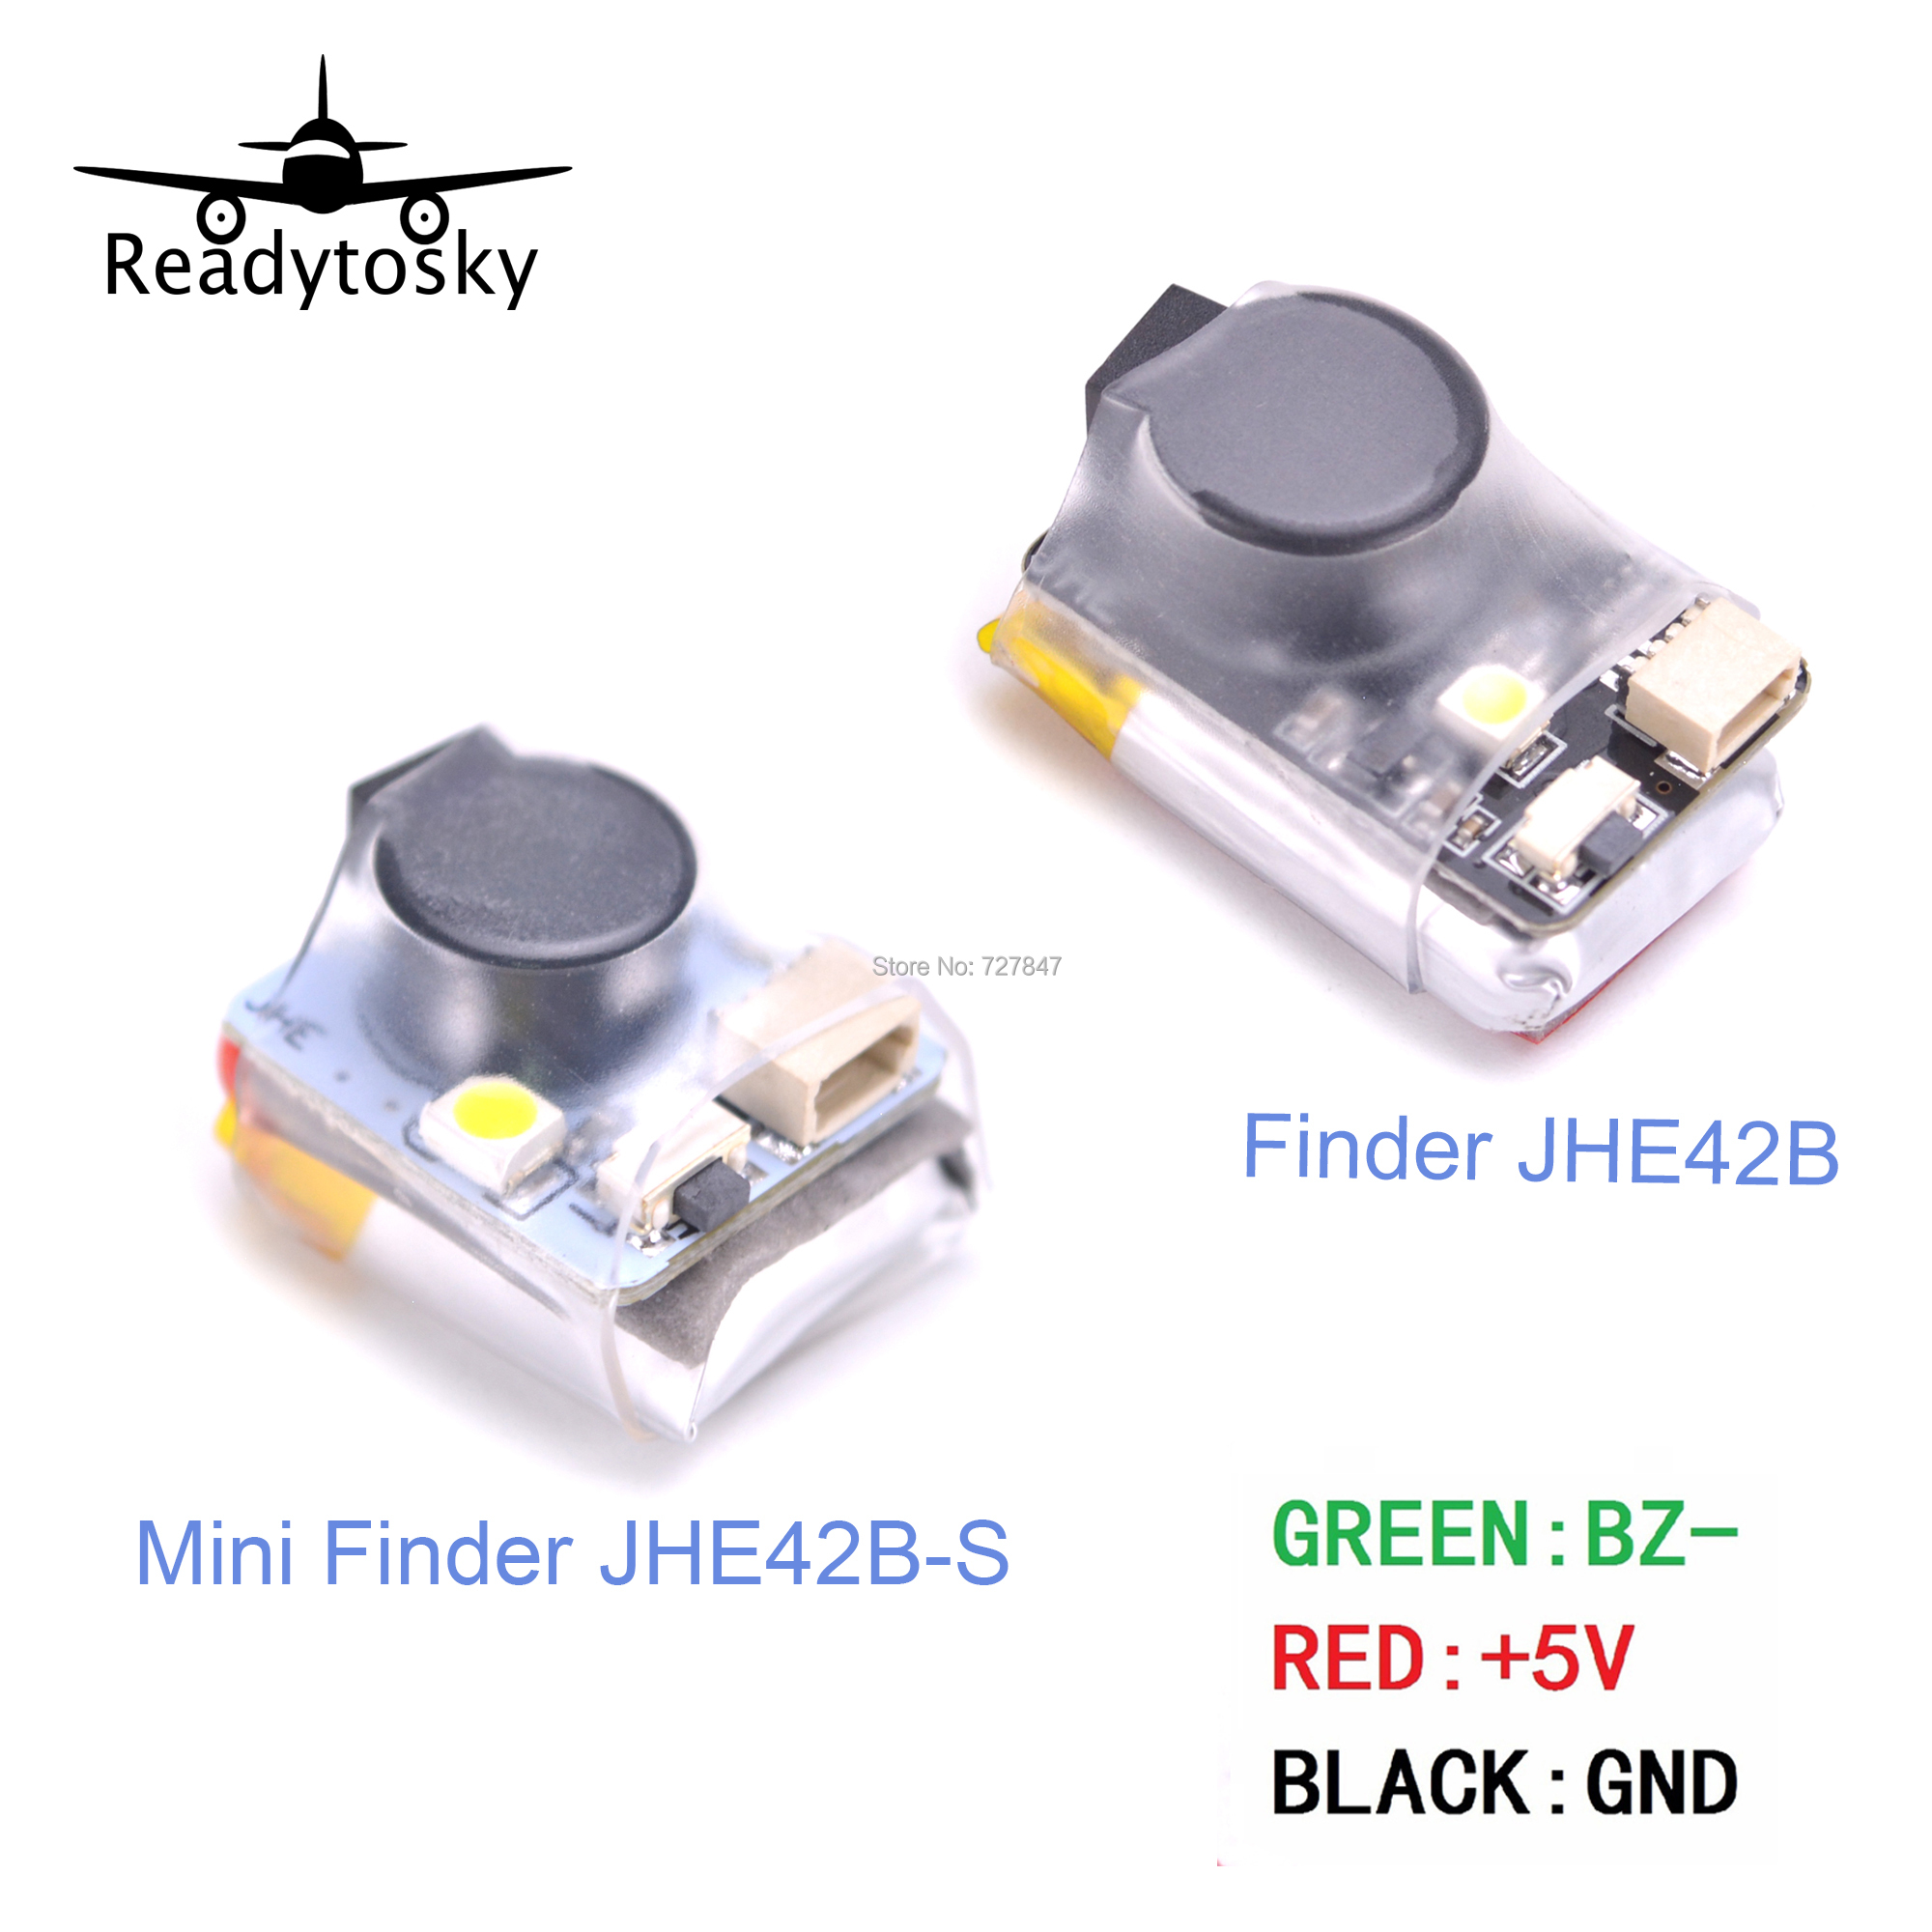 Finder JHE42B / JHE42B_S / JHE20B 5V Super Loud Buzzer Tracker 110dB w/ LED Buzzer Alarm For FPV Racing Drone Flight Controller